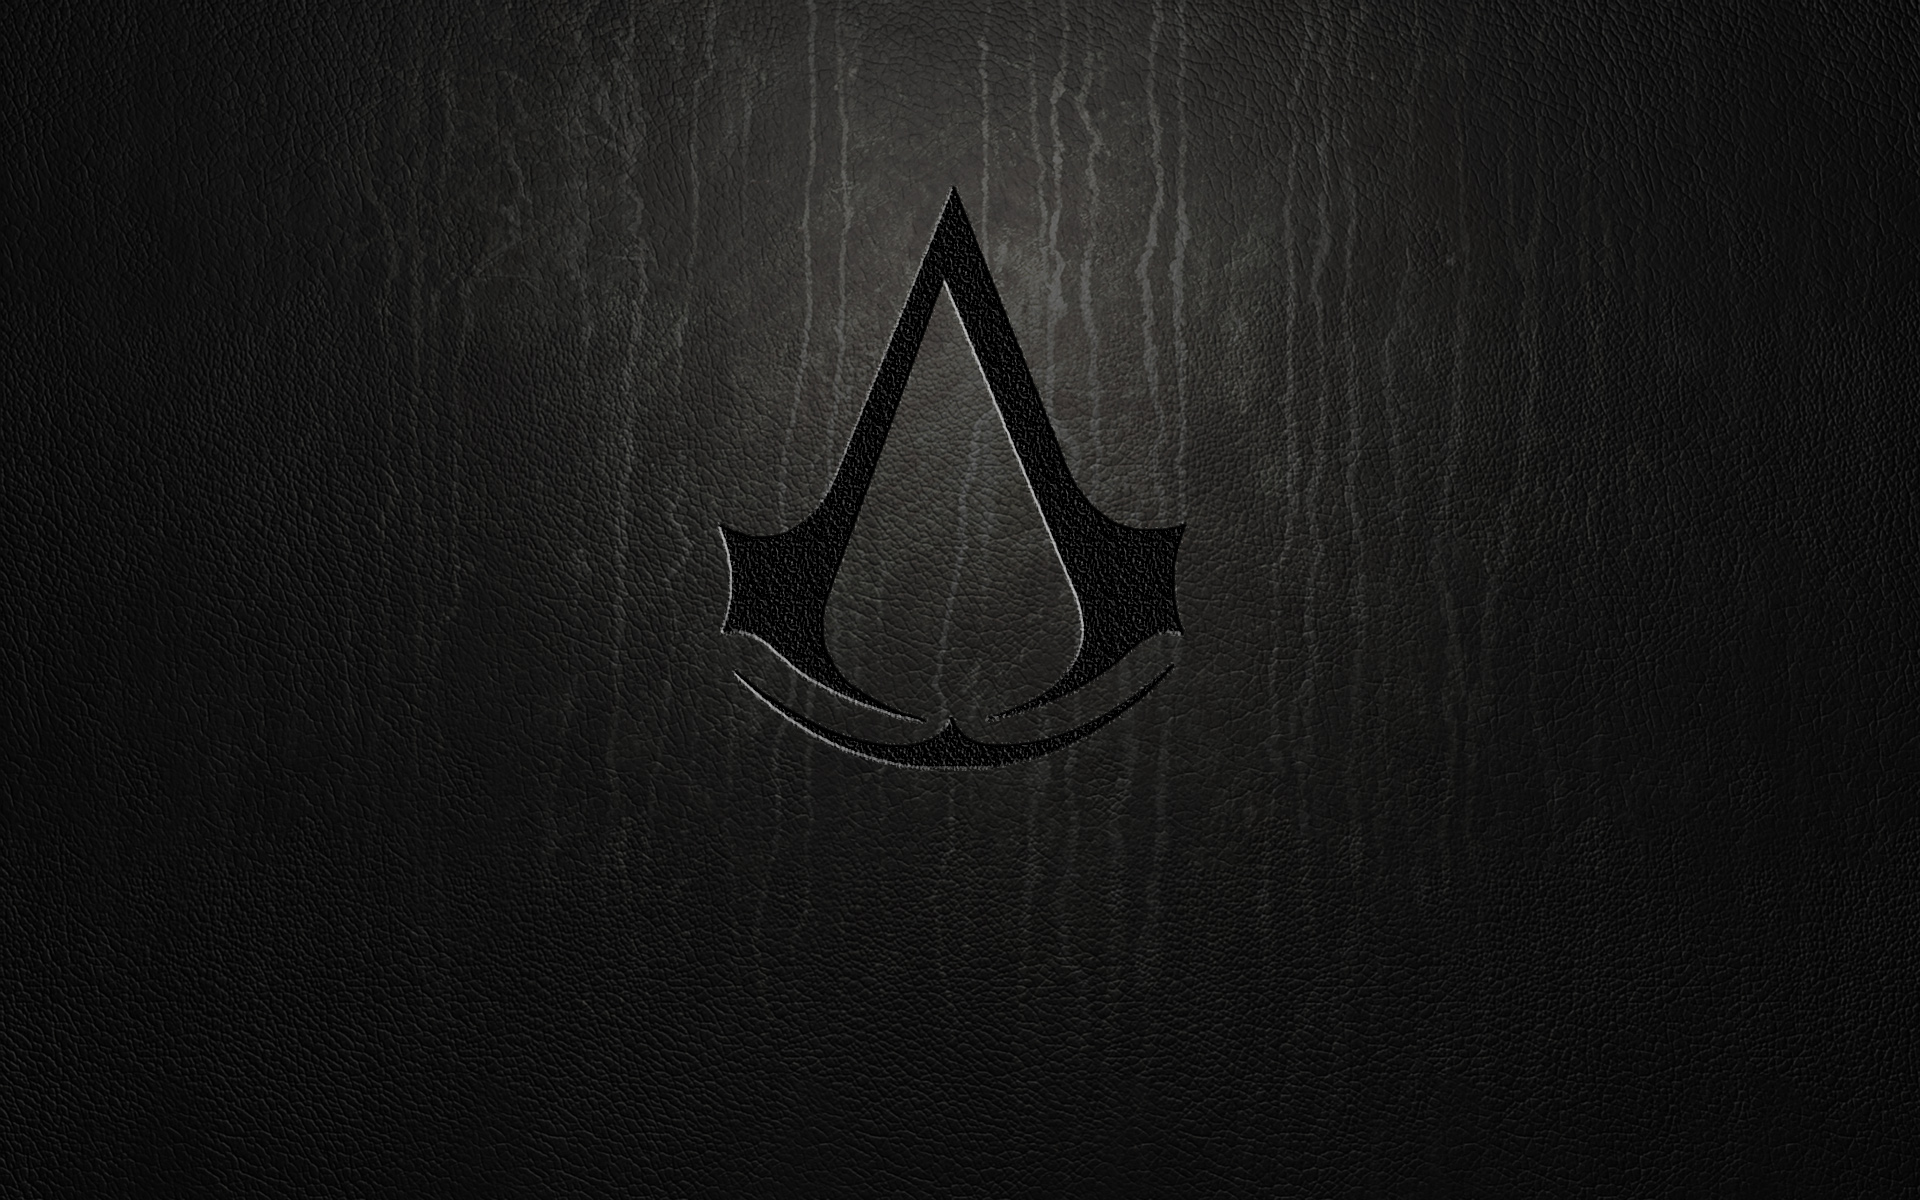 assassin  s creed wallpaper by retrieved fiend d3j7kwhjpg 1920x1200